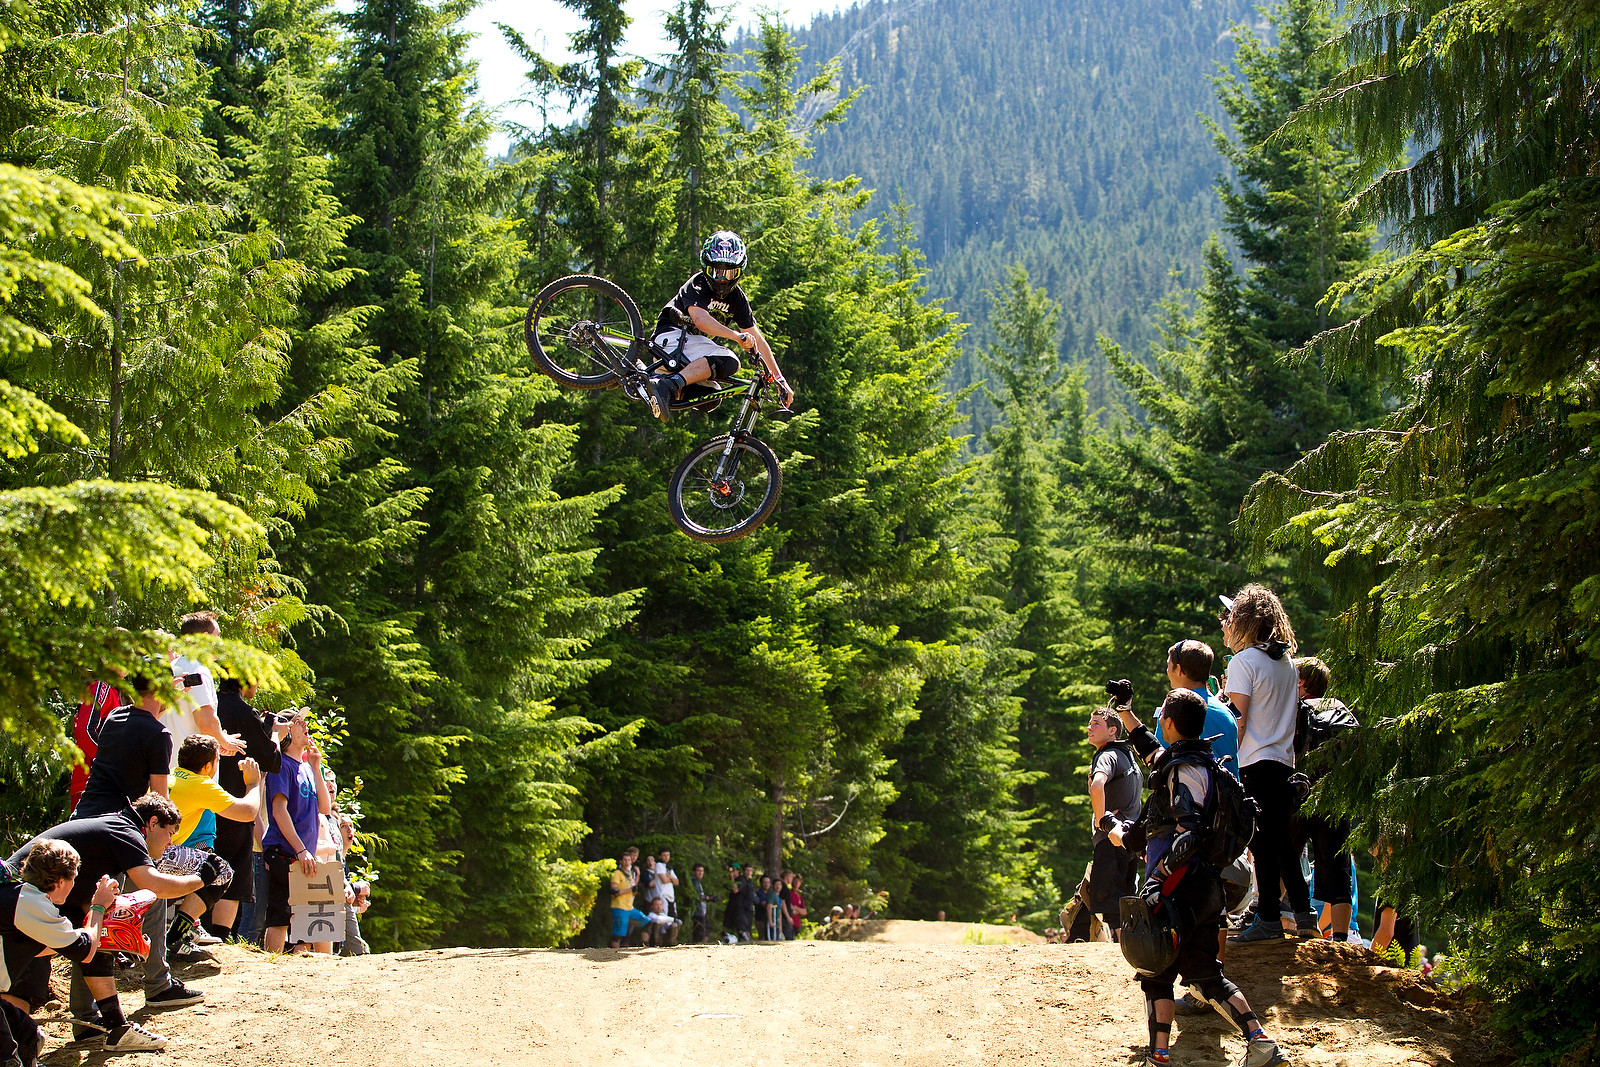 Graham Agassiz, 2011 Whip Off Worlds - Whip Off Worlds is Coming - Mountain Biking Pictures - Vital MTB